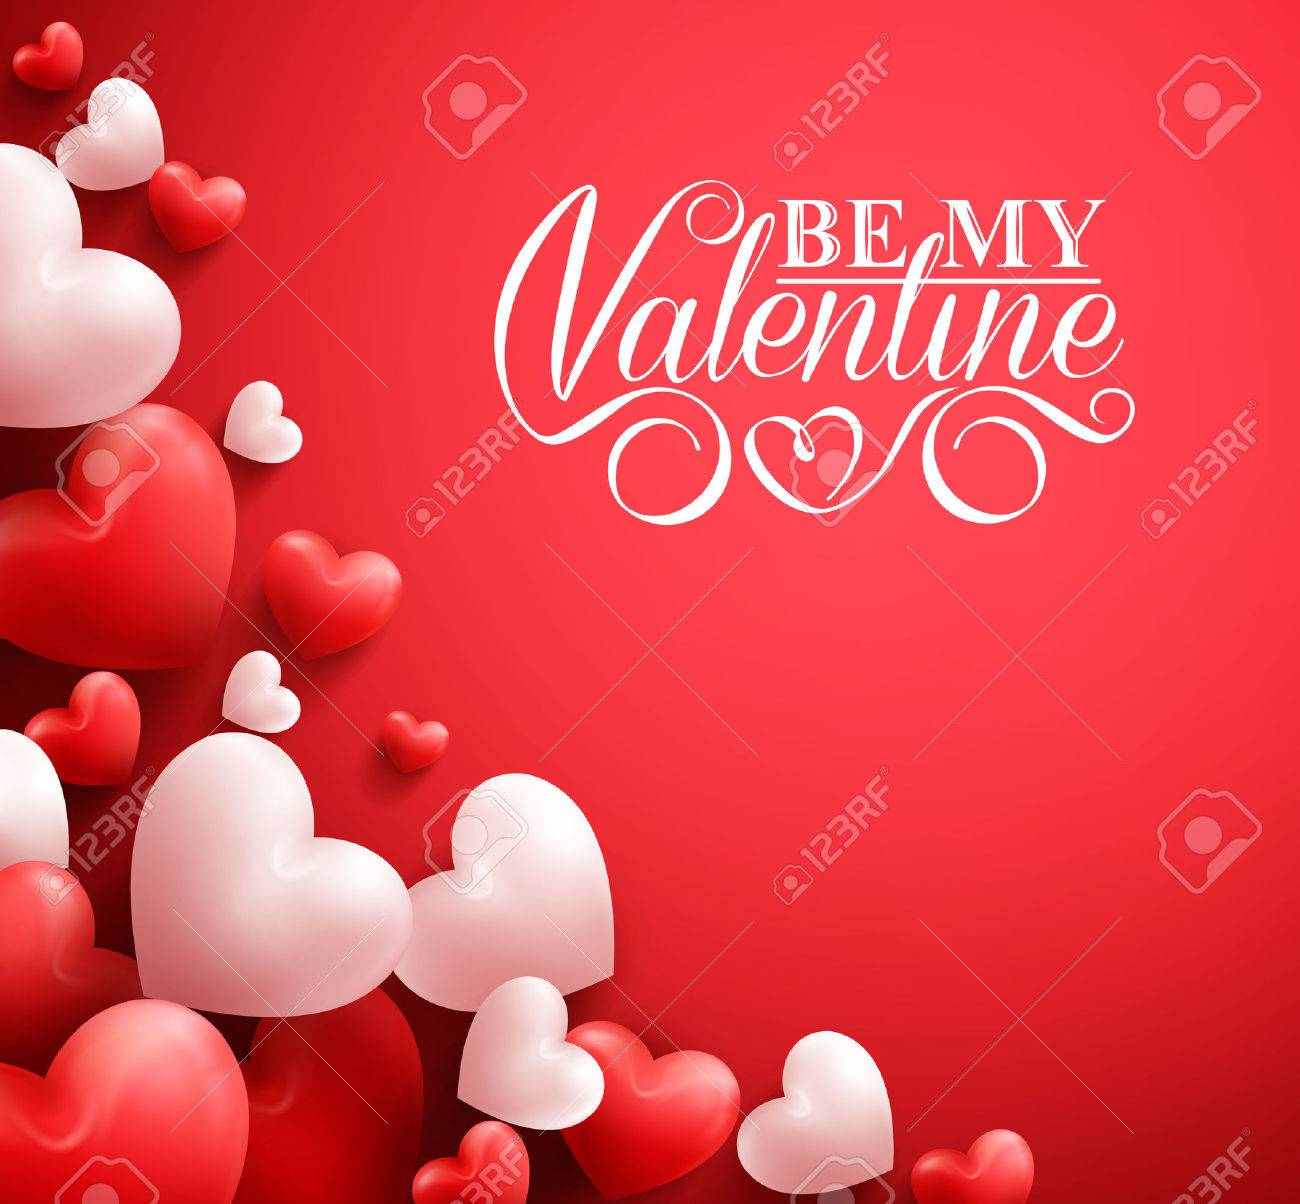 Realistic 3D Colorful Soft and Smooth Valentine Hearts in Red Background with Happy Valentines Day Greetings. Illustration - 50500014